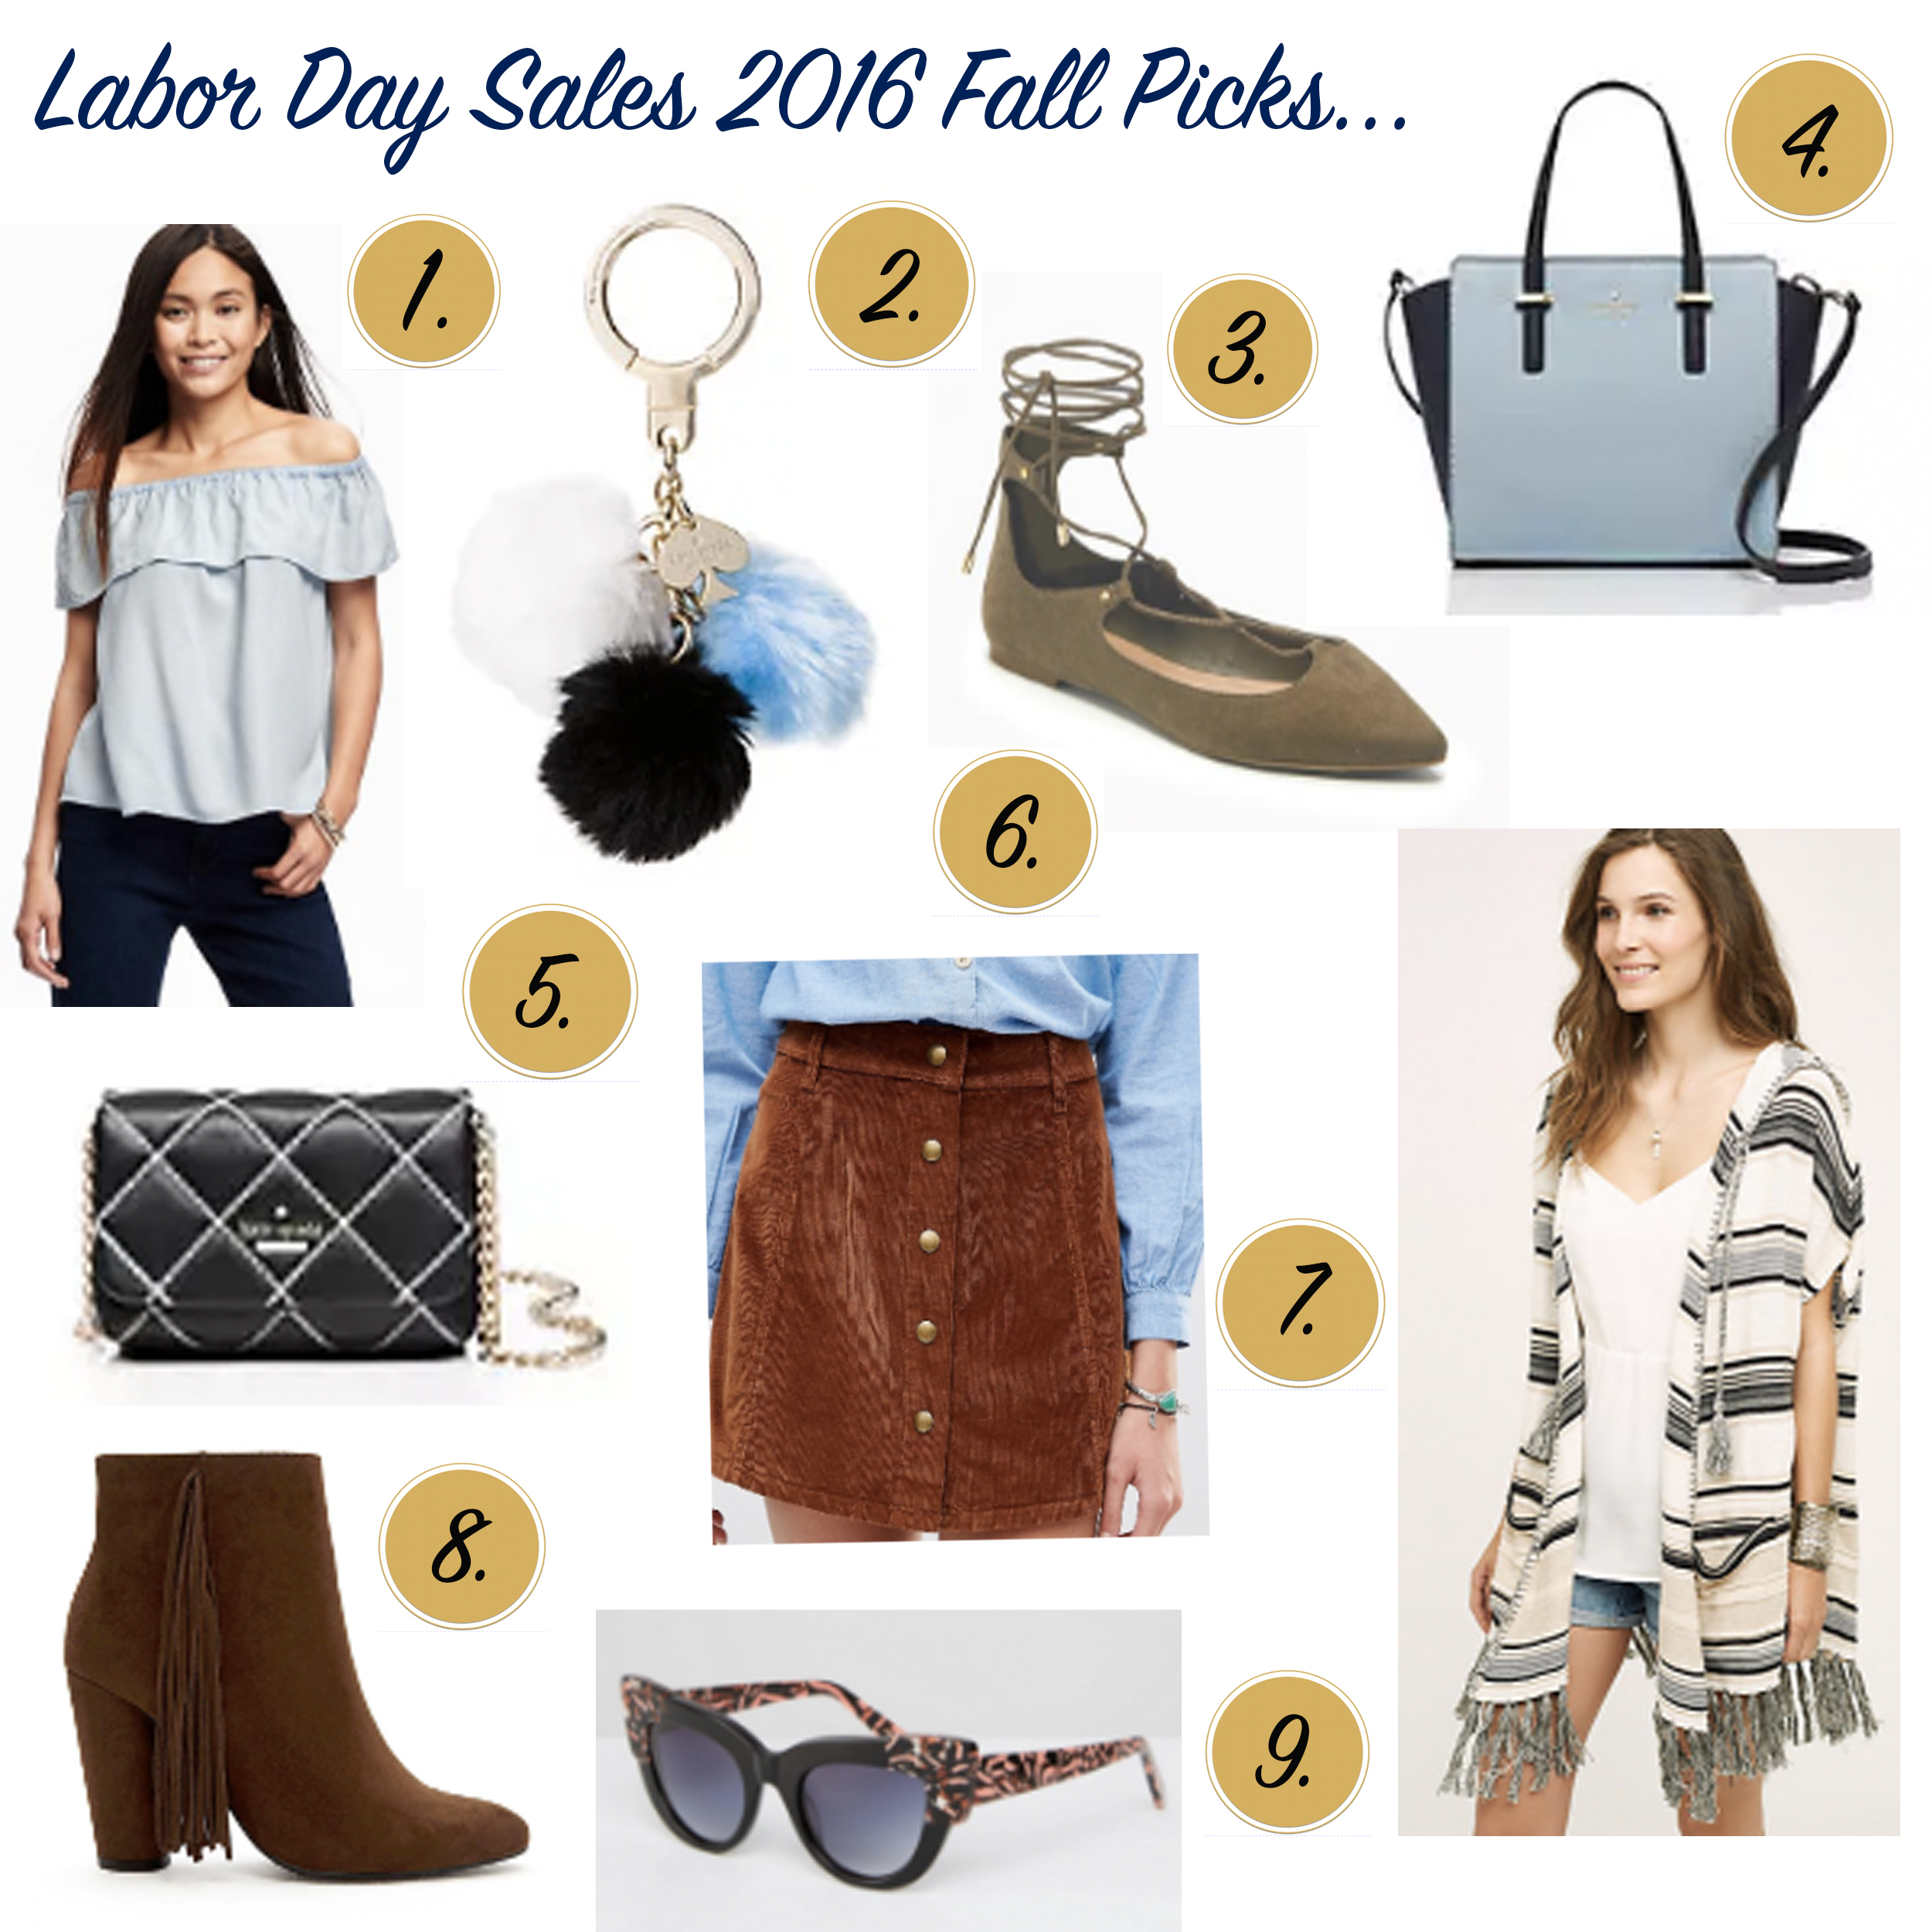 labor day sales 2016, labor day sales, fall style, la blogger, missyonmadison, melissa tierney, missy on madison, kate spade labor day sale, kate spade, anthropologie sale, anthropologie labor day sale, asos labor day sale, asos sale, forever 21 sale, forever 21 labor day sale, black quilted bag, button front skirt, asos sunglasses, old navy, ols navy cold shoulder top, old navy labor day sale, lace up flats, pom pom key chain, old navy flats, style blogger, style guide, fall style guide, fashion blogger,